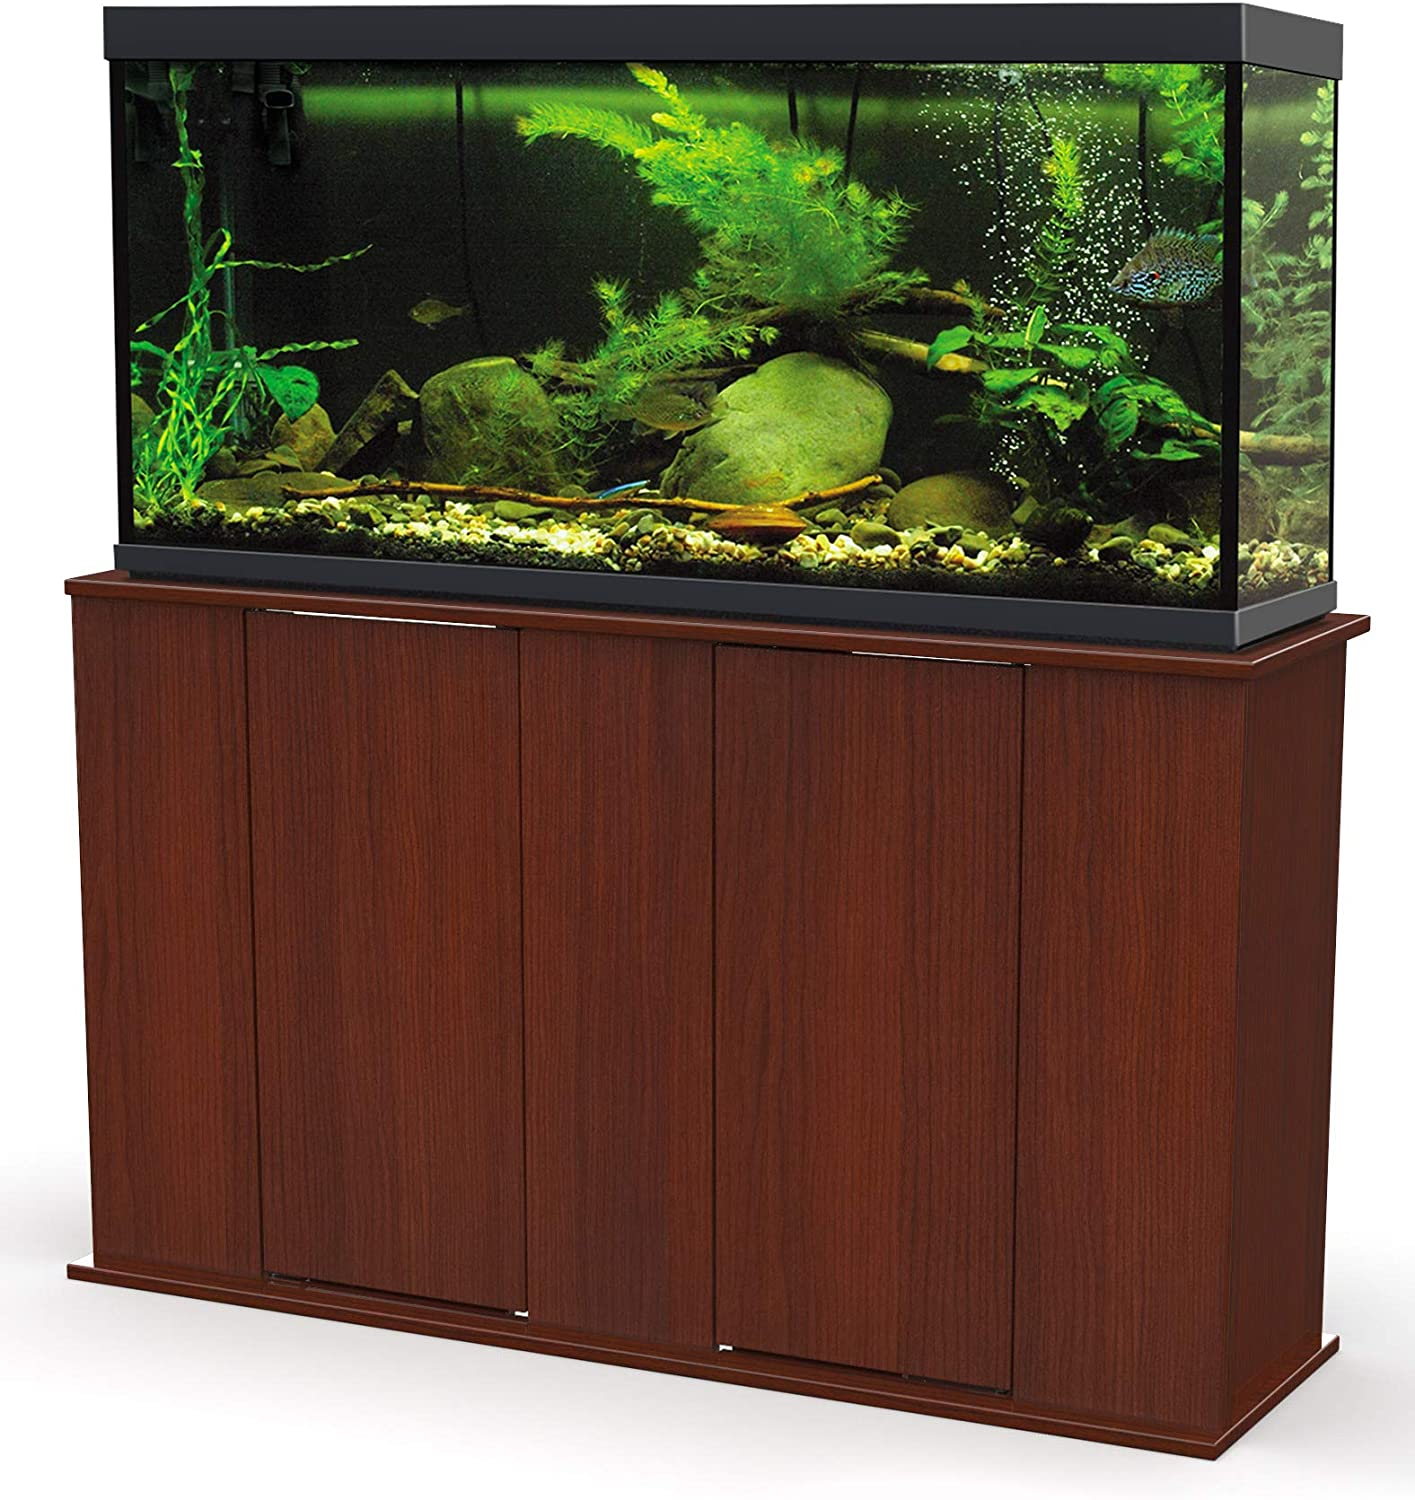 Deluxe 55Gallon Aquarium Stand Storage Cabinet Fish Tank Holder Cherry Brown